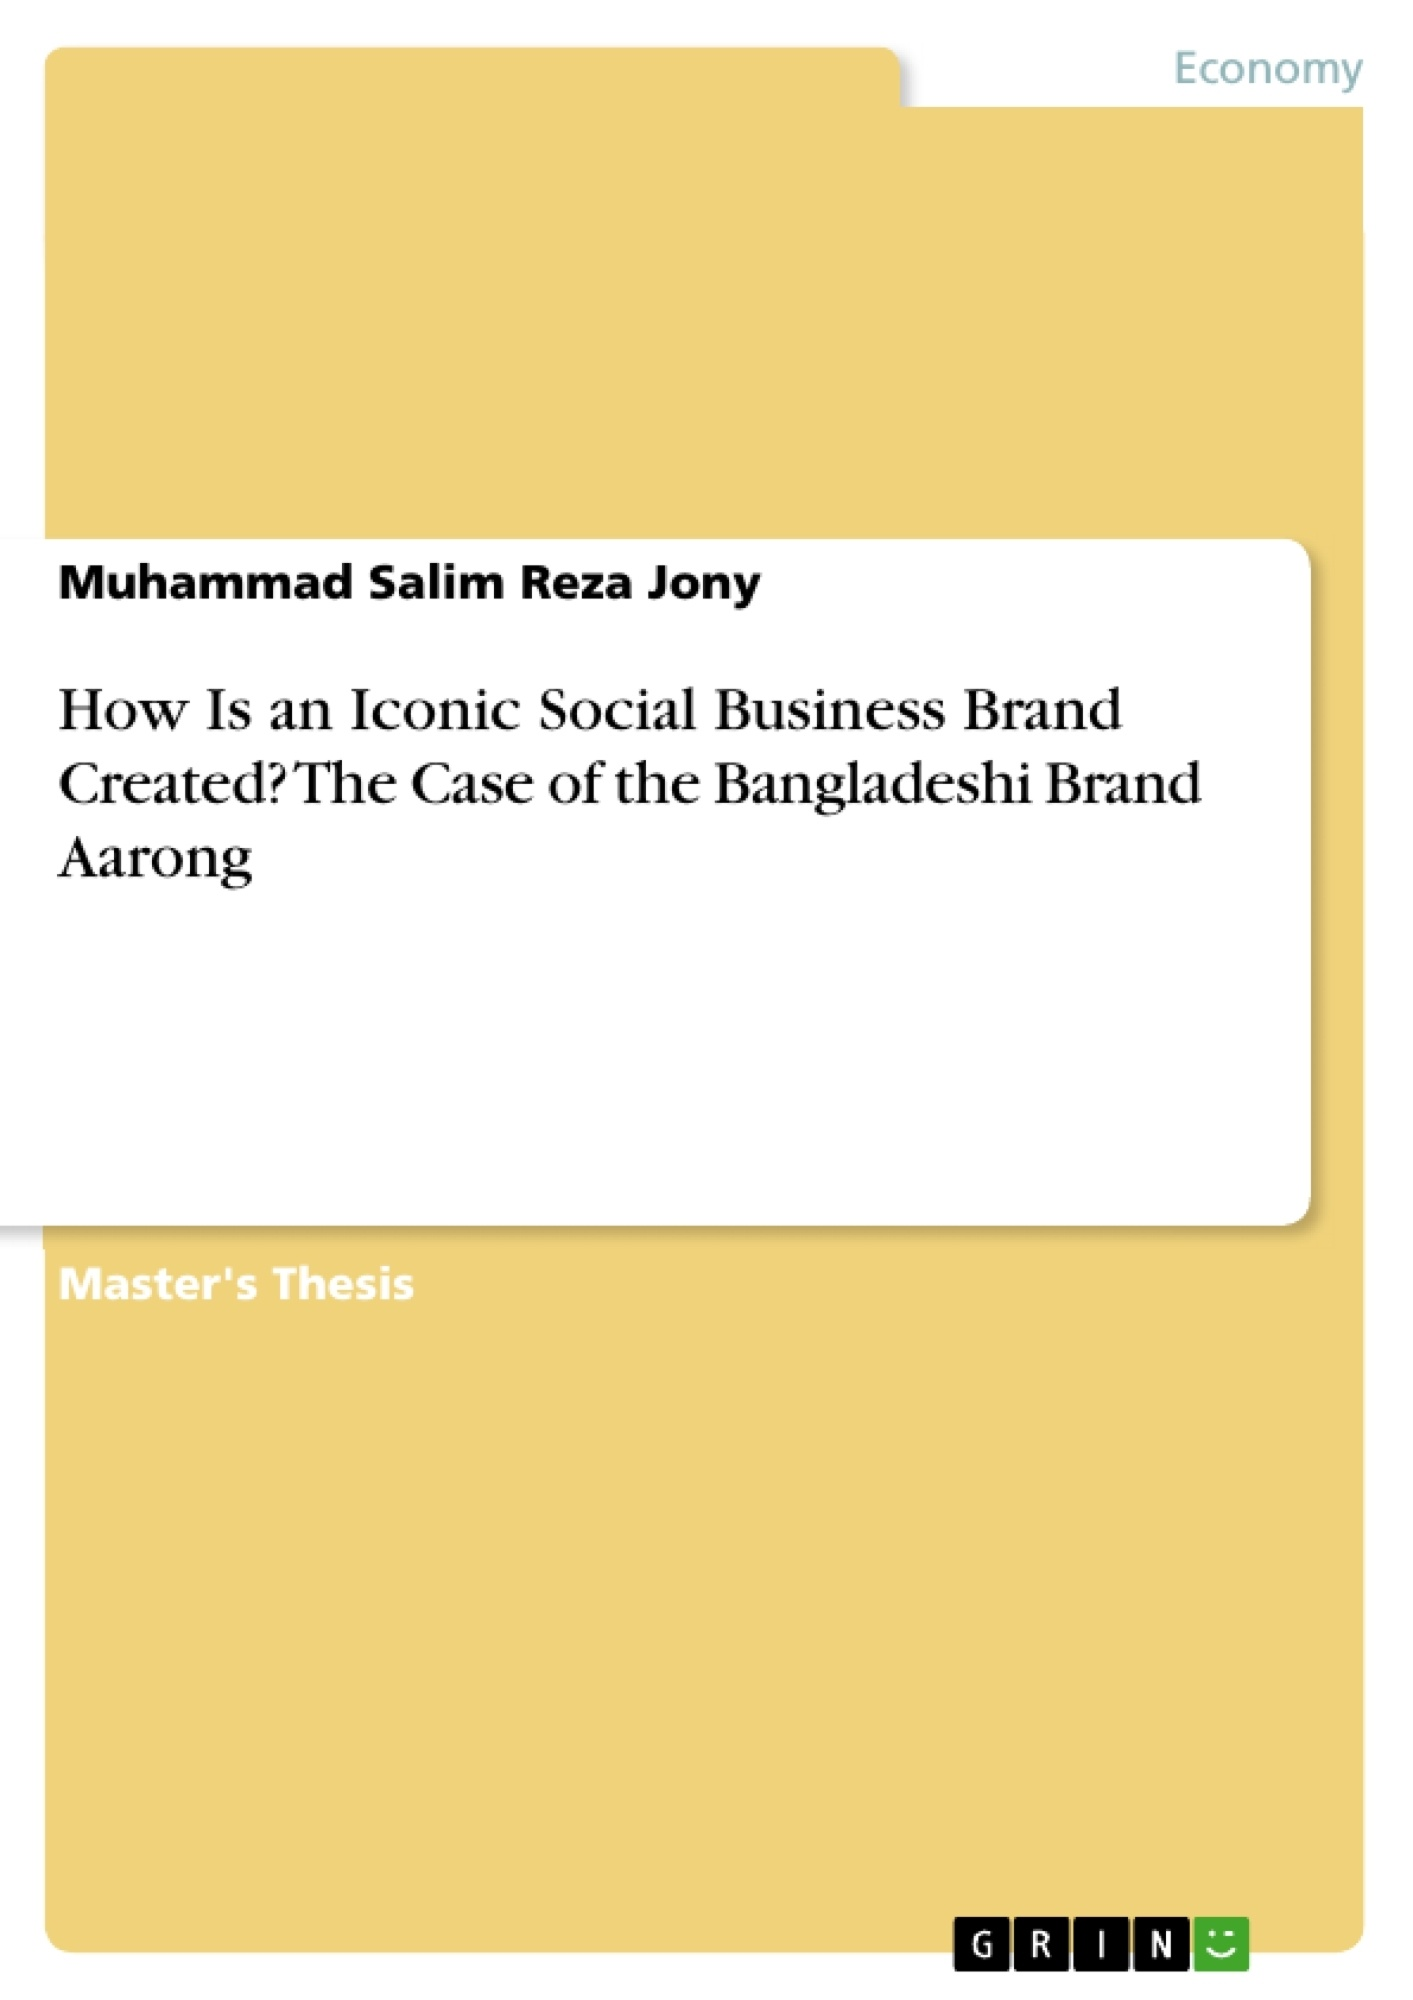 Title: How Is an Iconic Social Business Brand Created? The Case of the Bangladeshi Brand Aarong